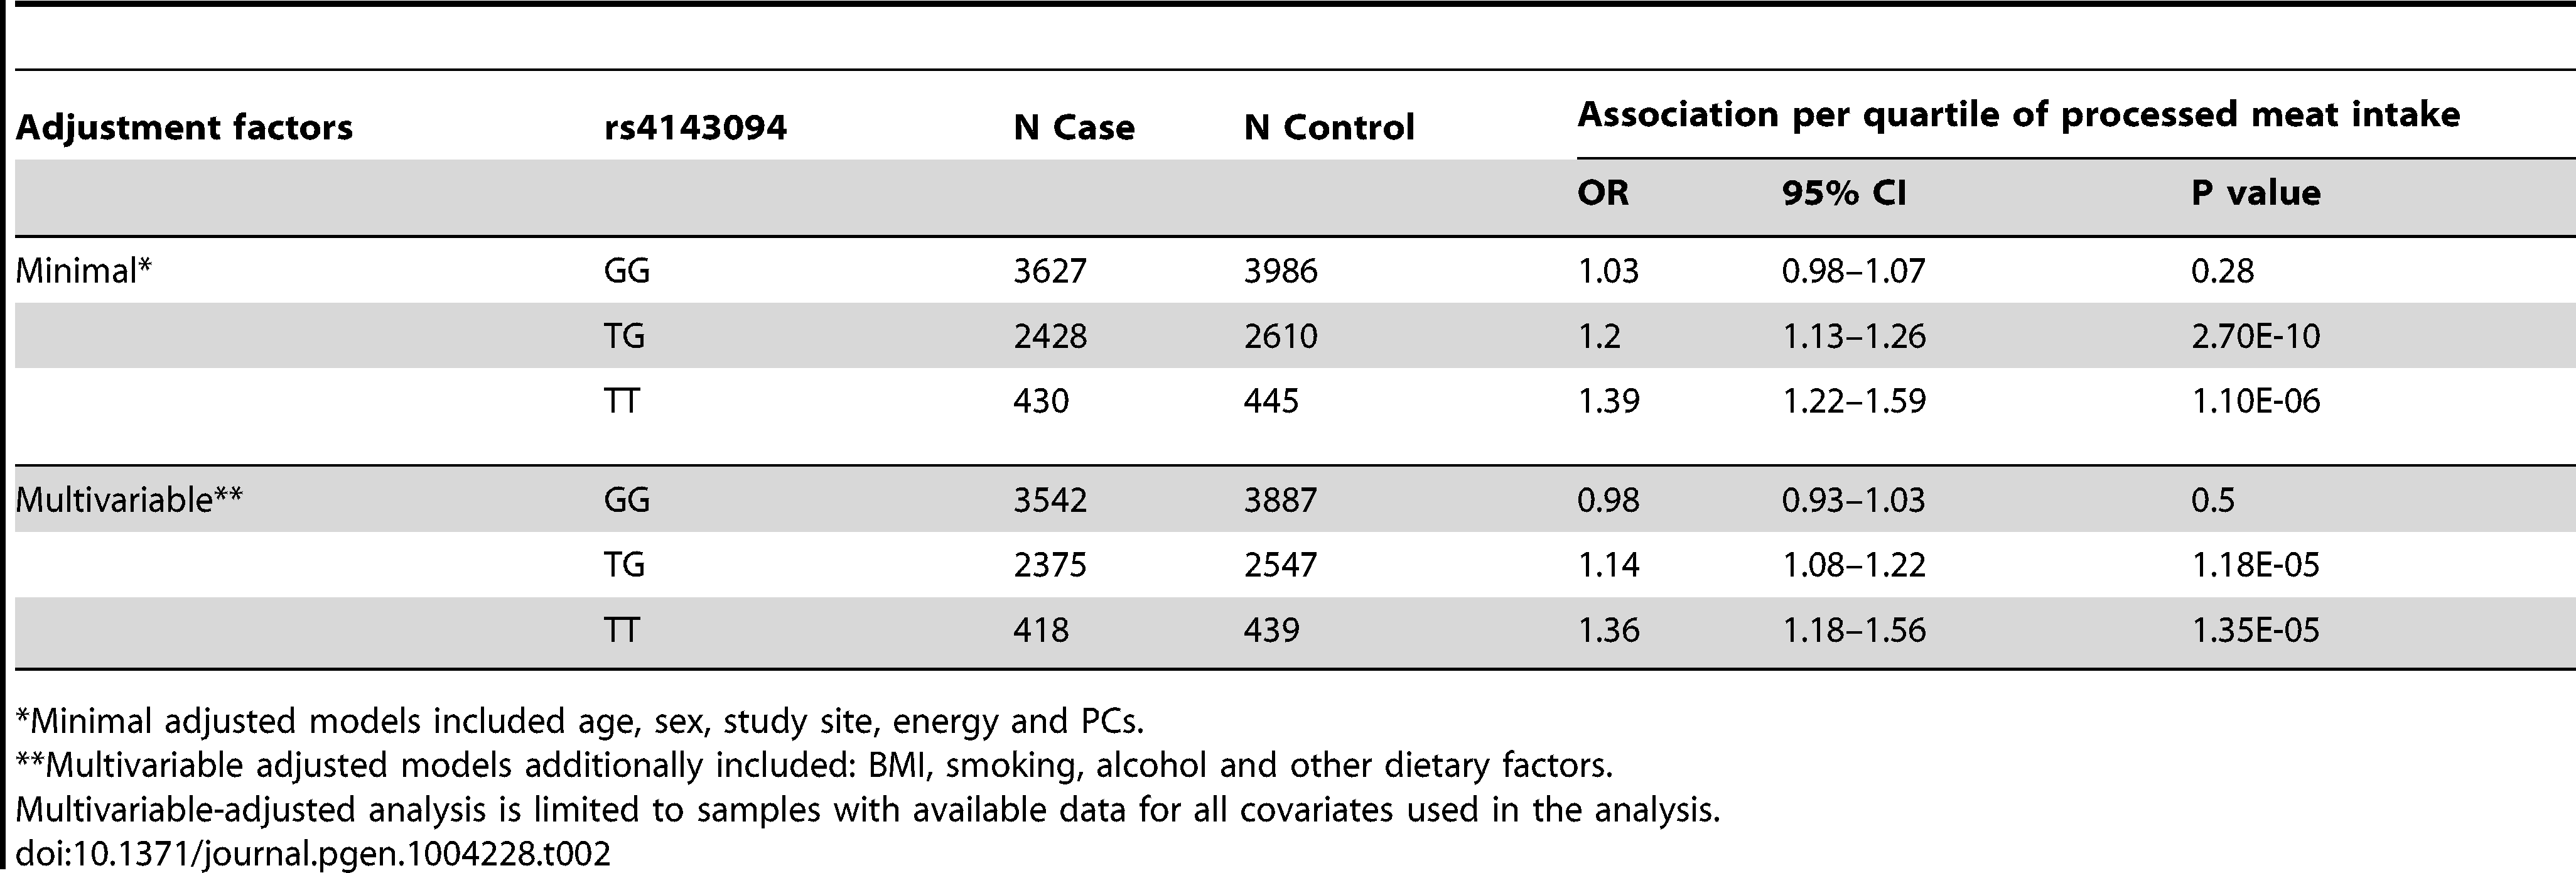 Association of processed meat and risk of colorectal cancer by genotype strata for rs4143094.